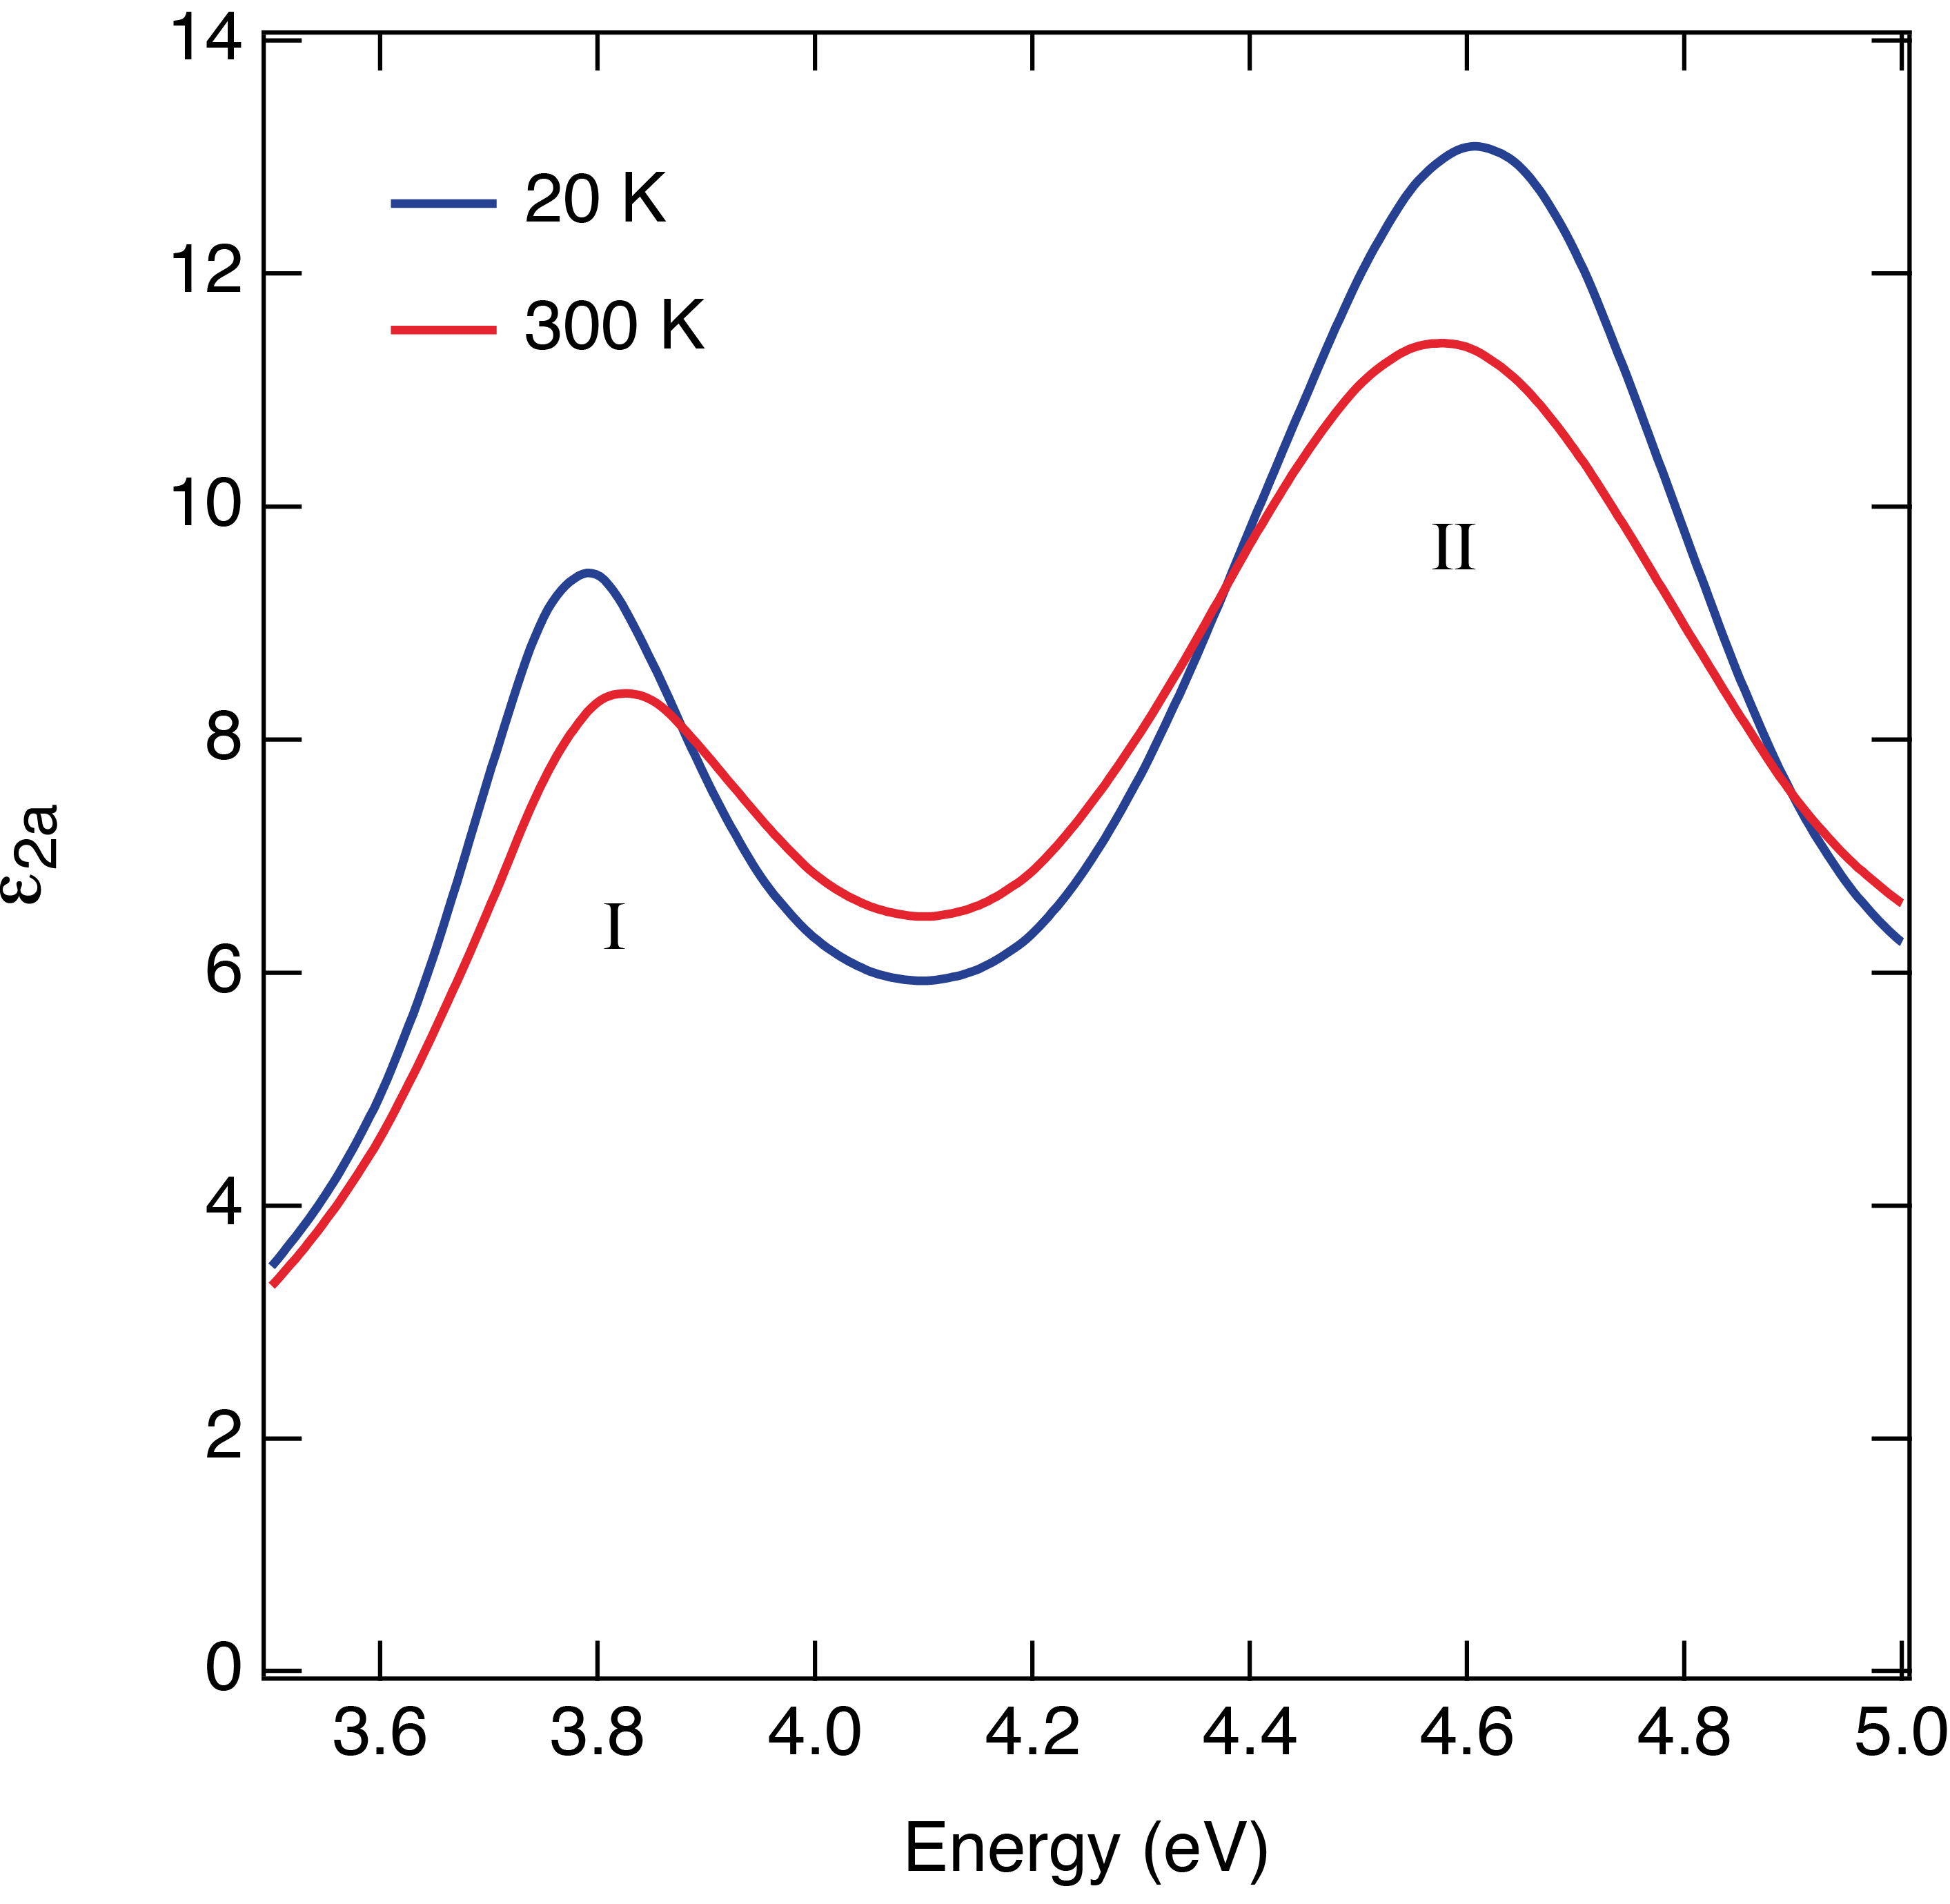 Imaginary part of the dielectric function at 20 K (blue curve) and 300 K (red curve) for